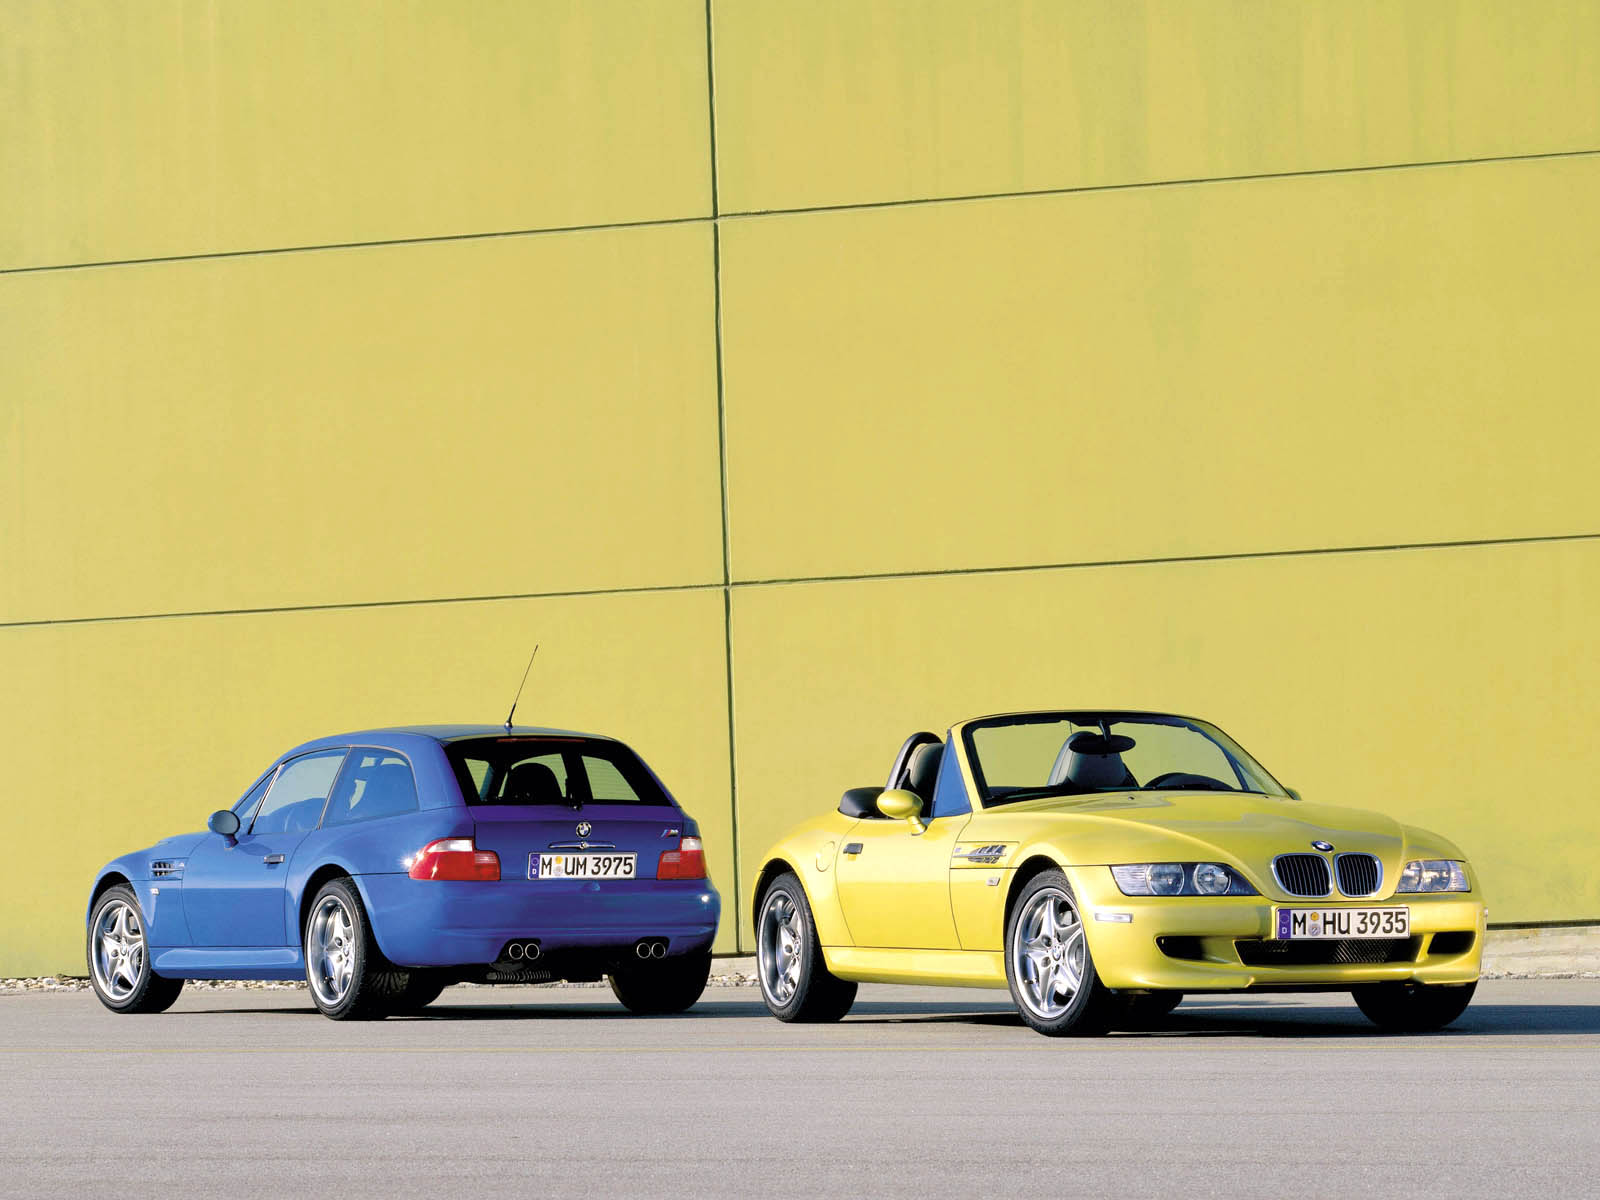 Bmw Z3 M Coupe Picture 10282 Bmw Photo Gallery